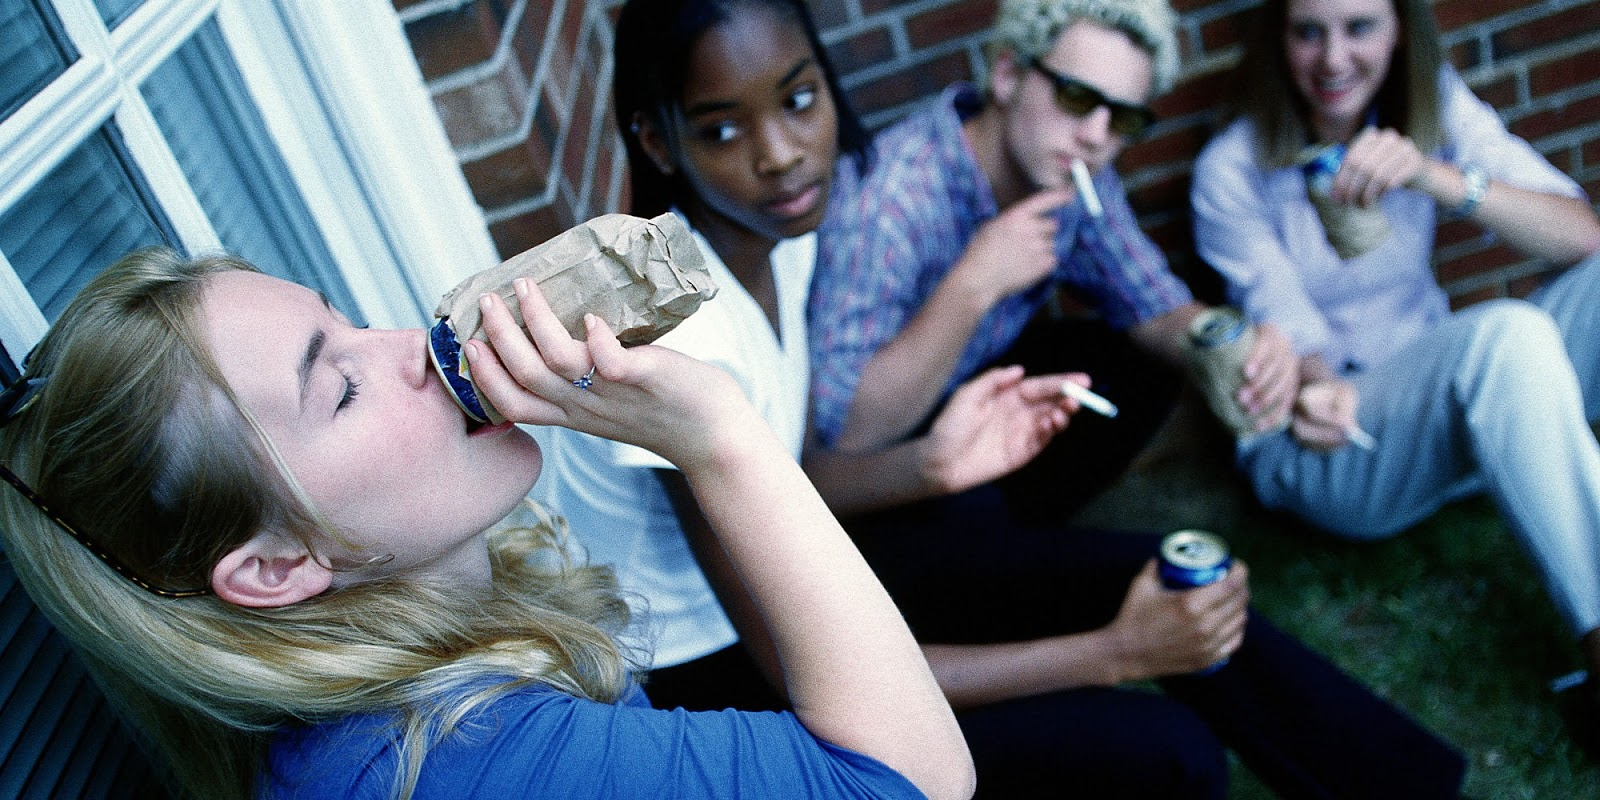 teenage alcoholism How many adults aged 35 and older drank alcohol in the past month on average.